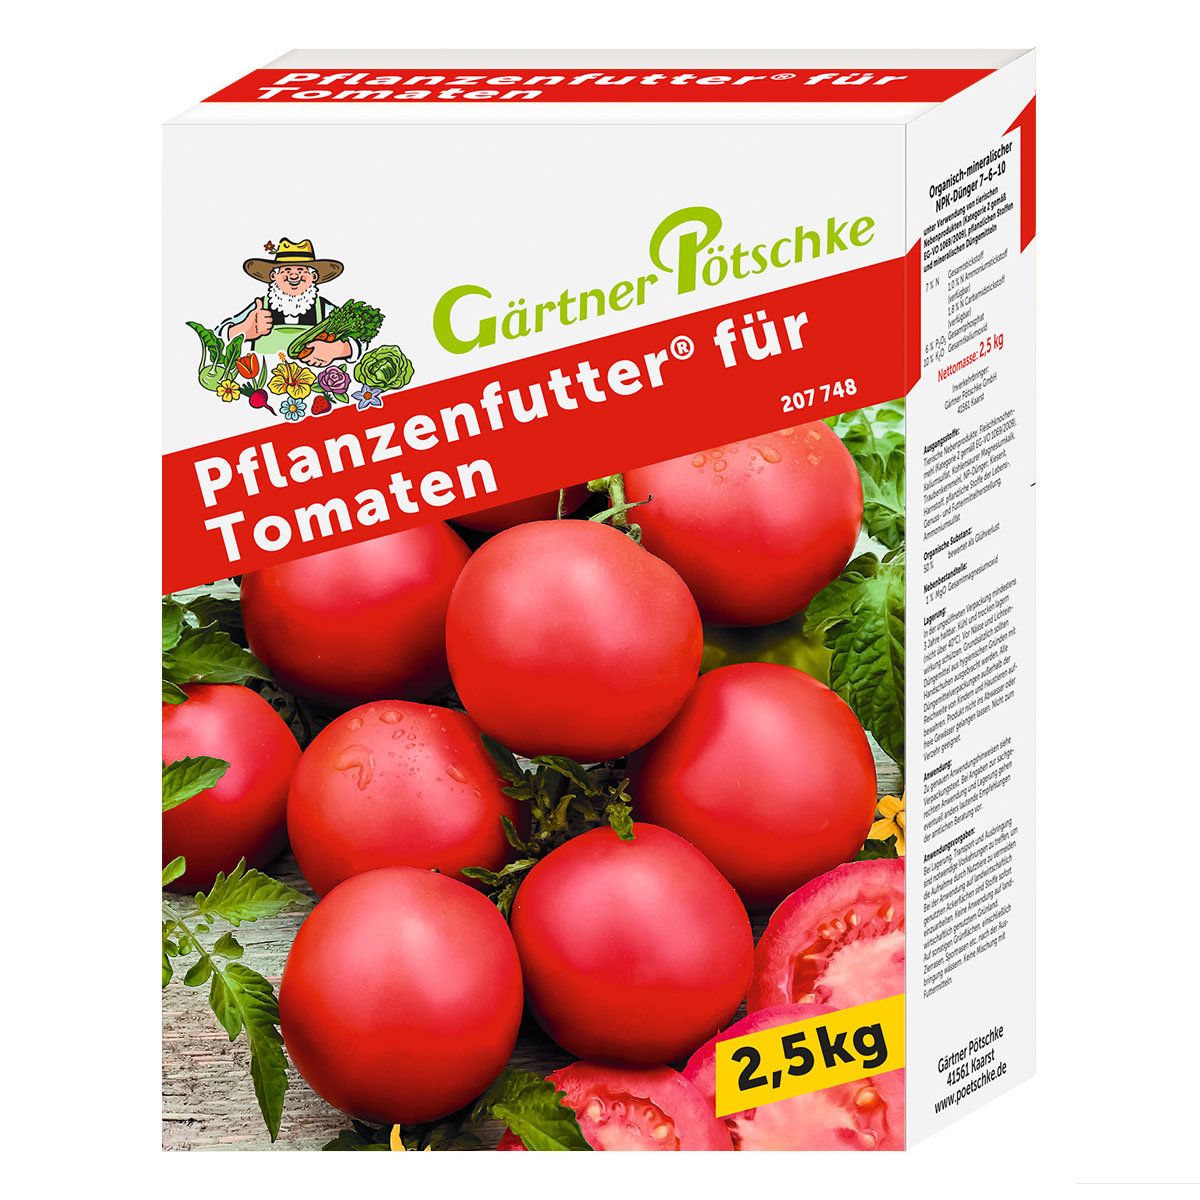 g rtner p tschke pflanzenfutter f r tomaten 2 5 kg online kaufen bei g rtner p tschke. Black Bedroom Furniture Sets. Home Design Ideas